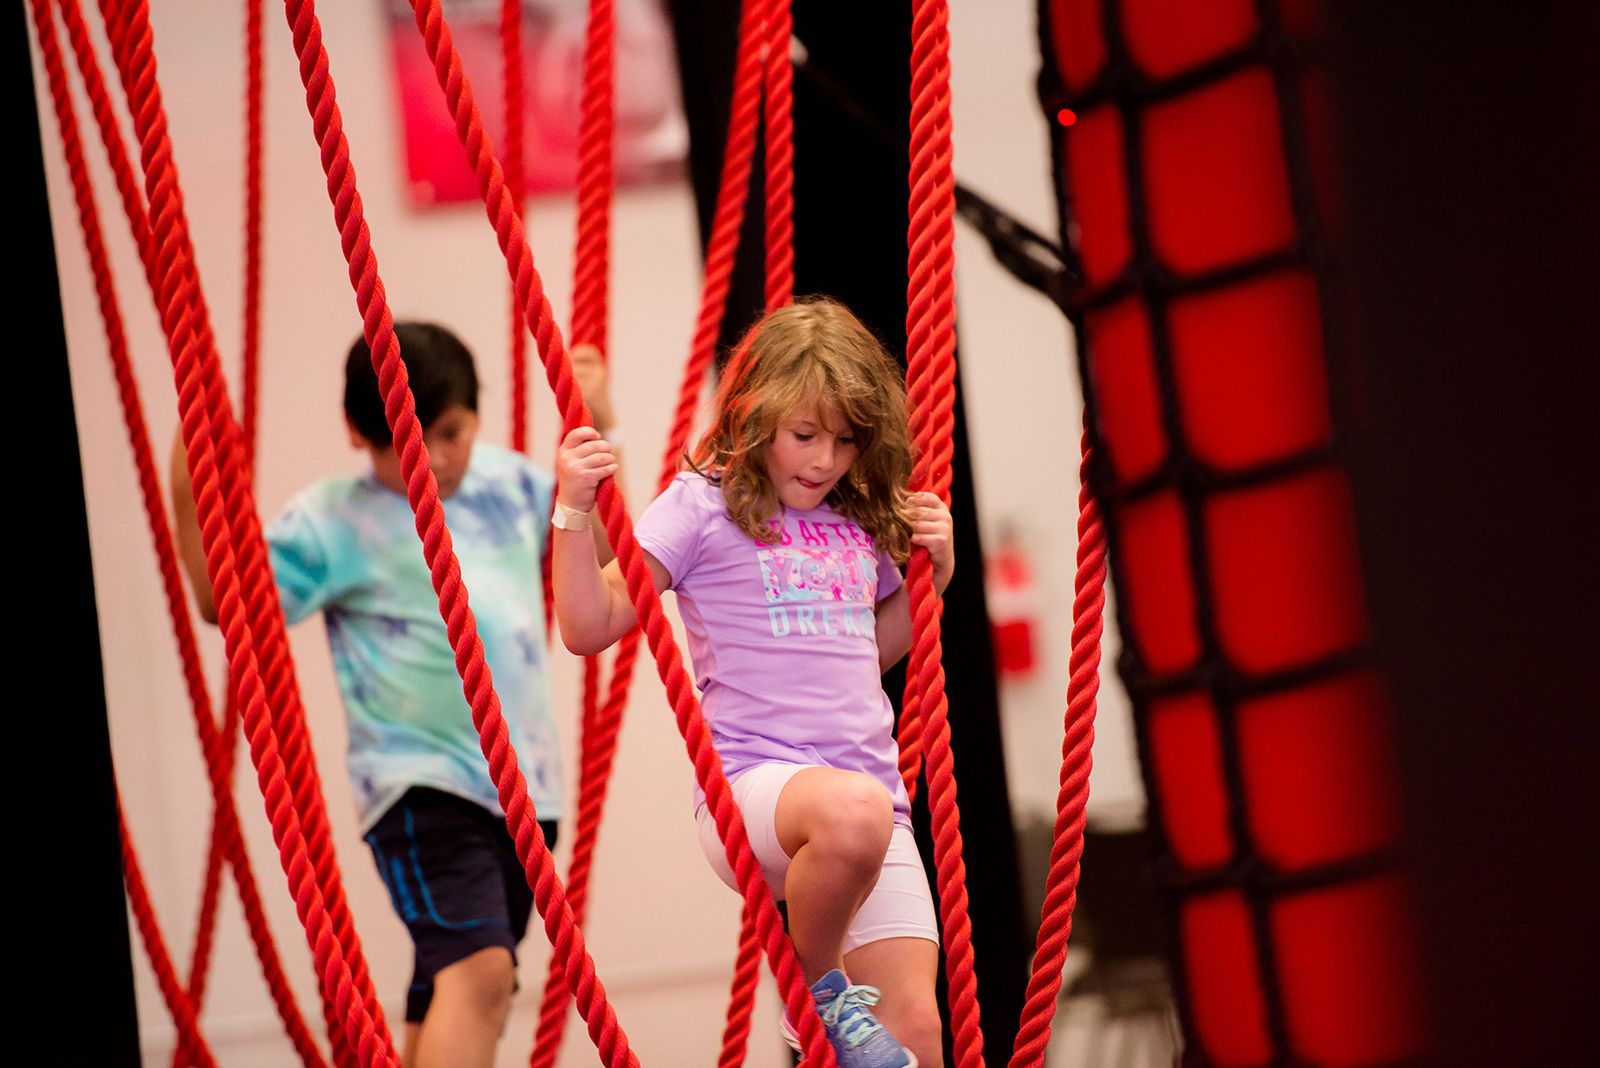 A young girl playing on an Adrenaline Monkey ropes obstacle